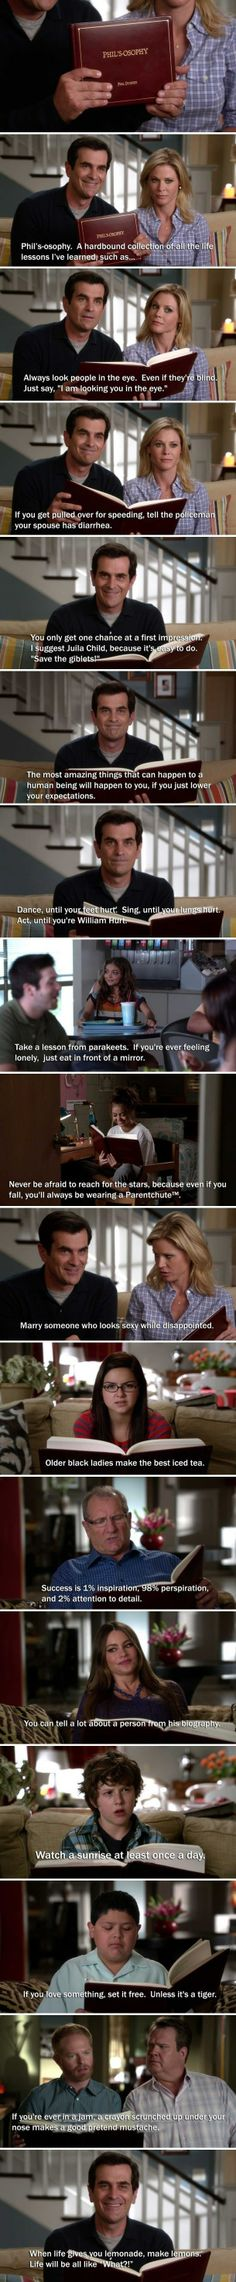 Phil's-osophy    ... one of the sweetest episodes of Modern Family <3